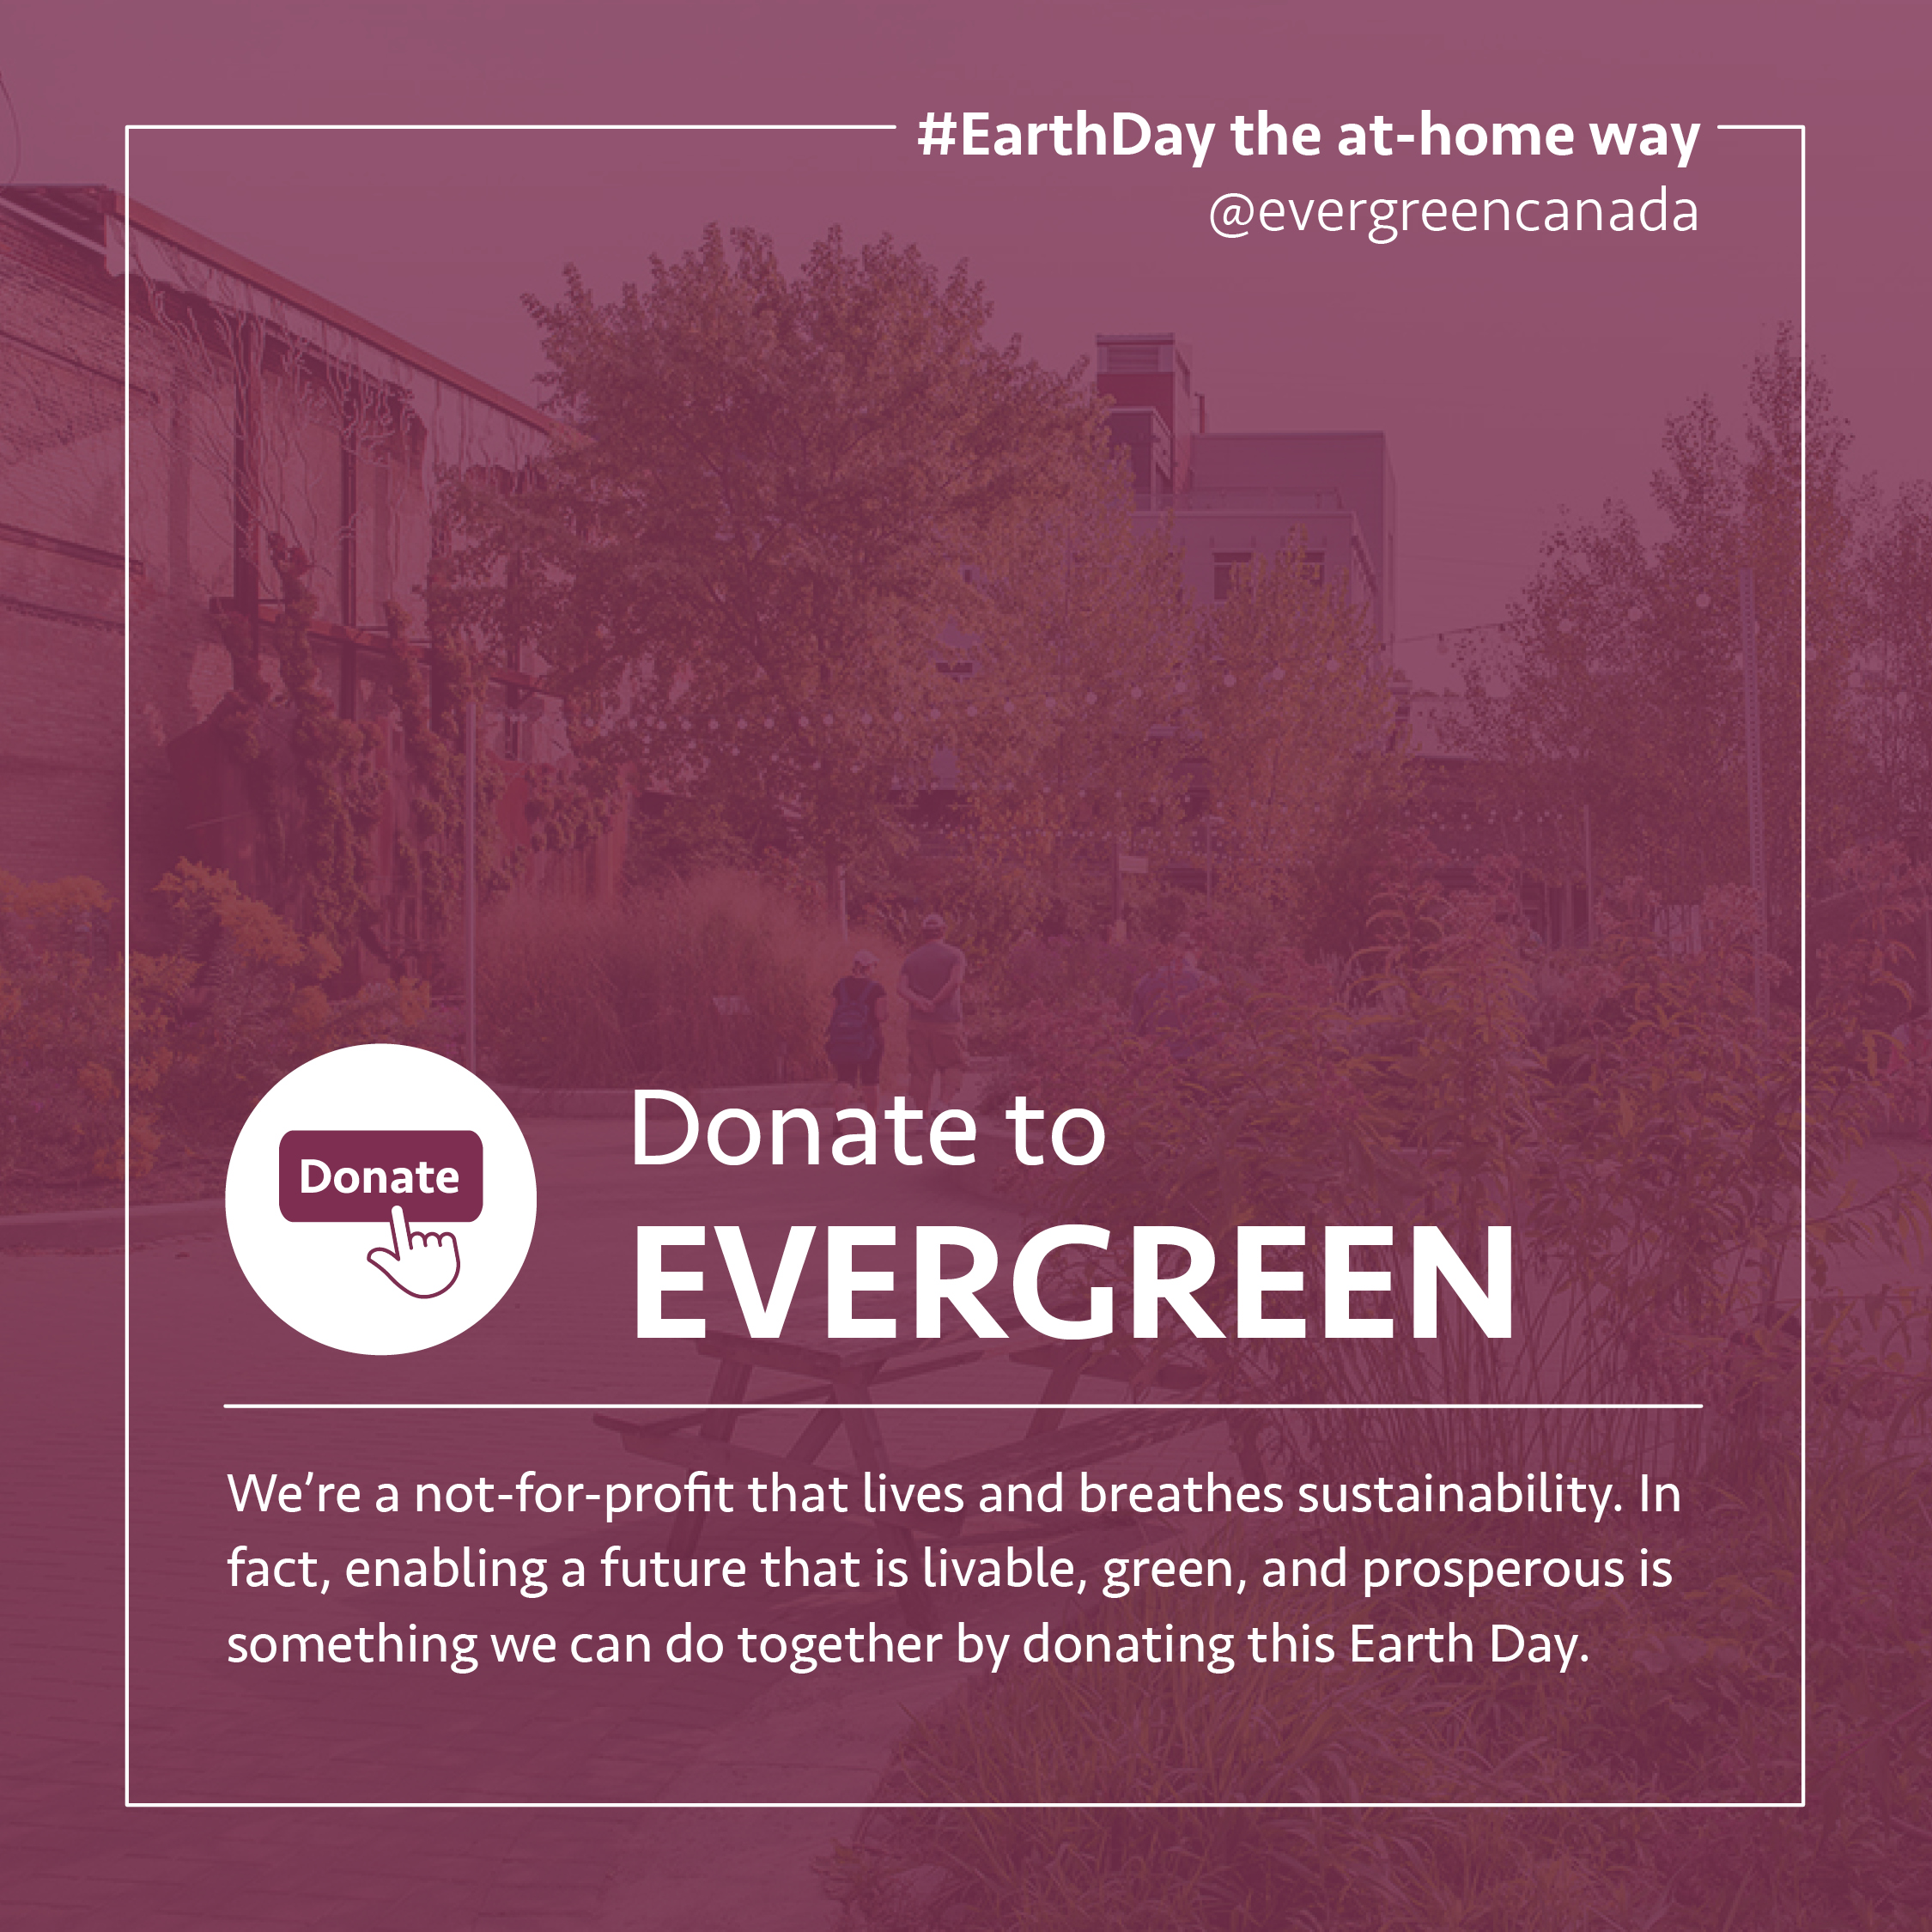 Donate to Evergreen. We're a not-for-profit that lives and breathes sustainability. In fact, enabling a future that is livable, green, and prosperous is something we can do together by donating this Earth Day.